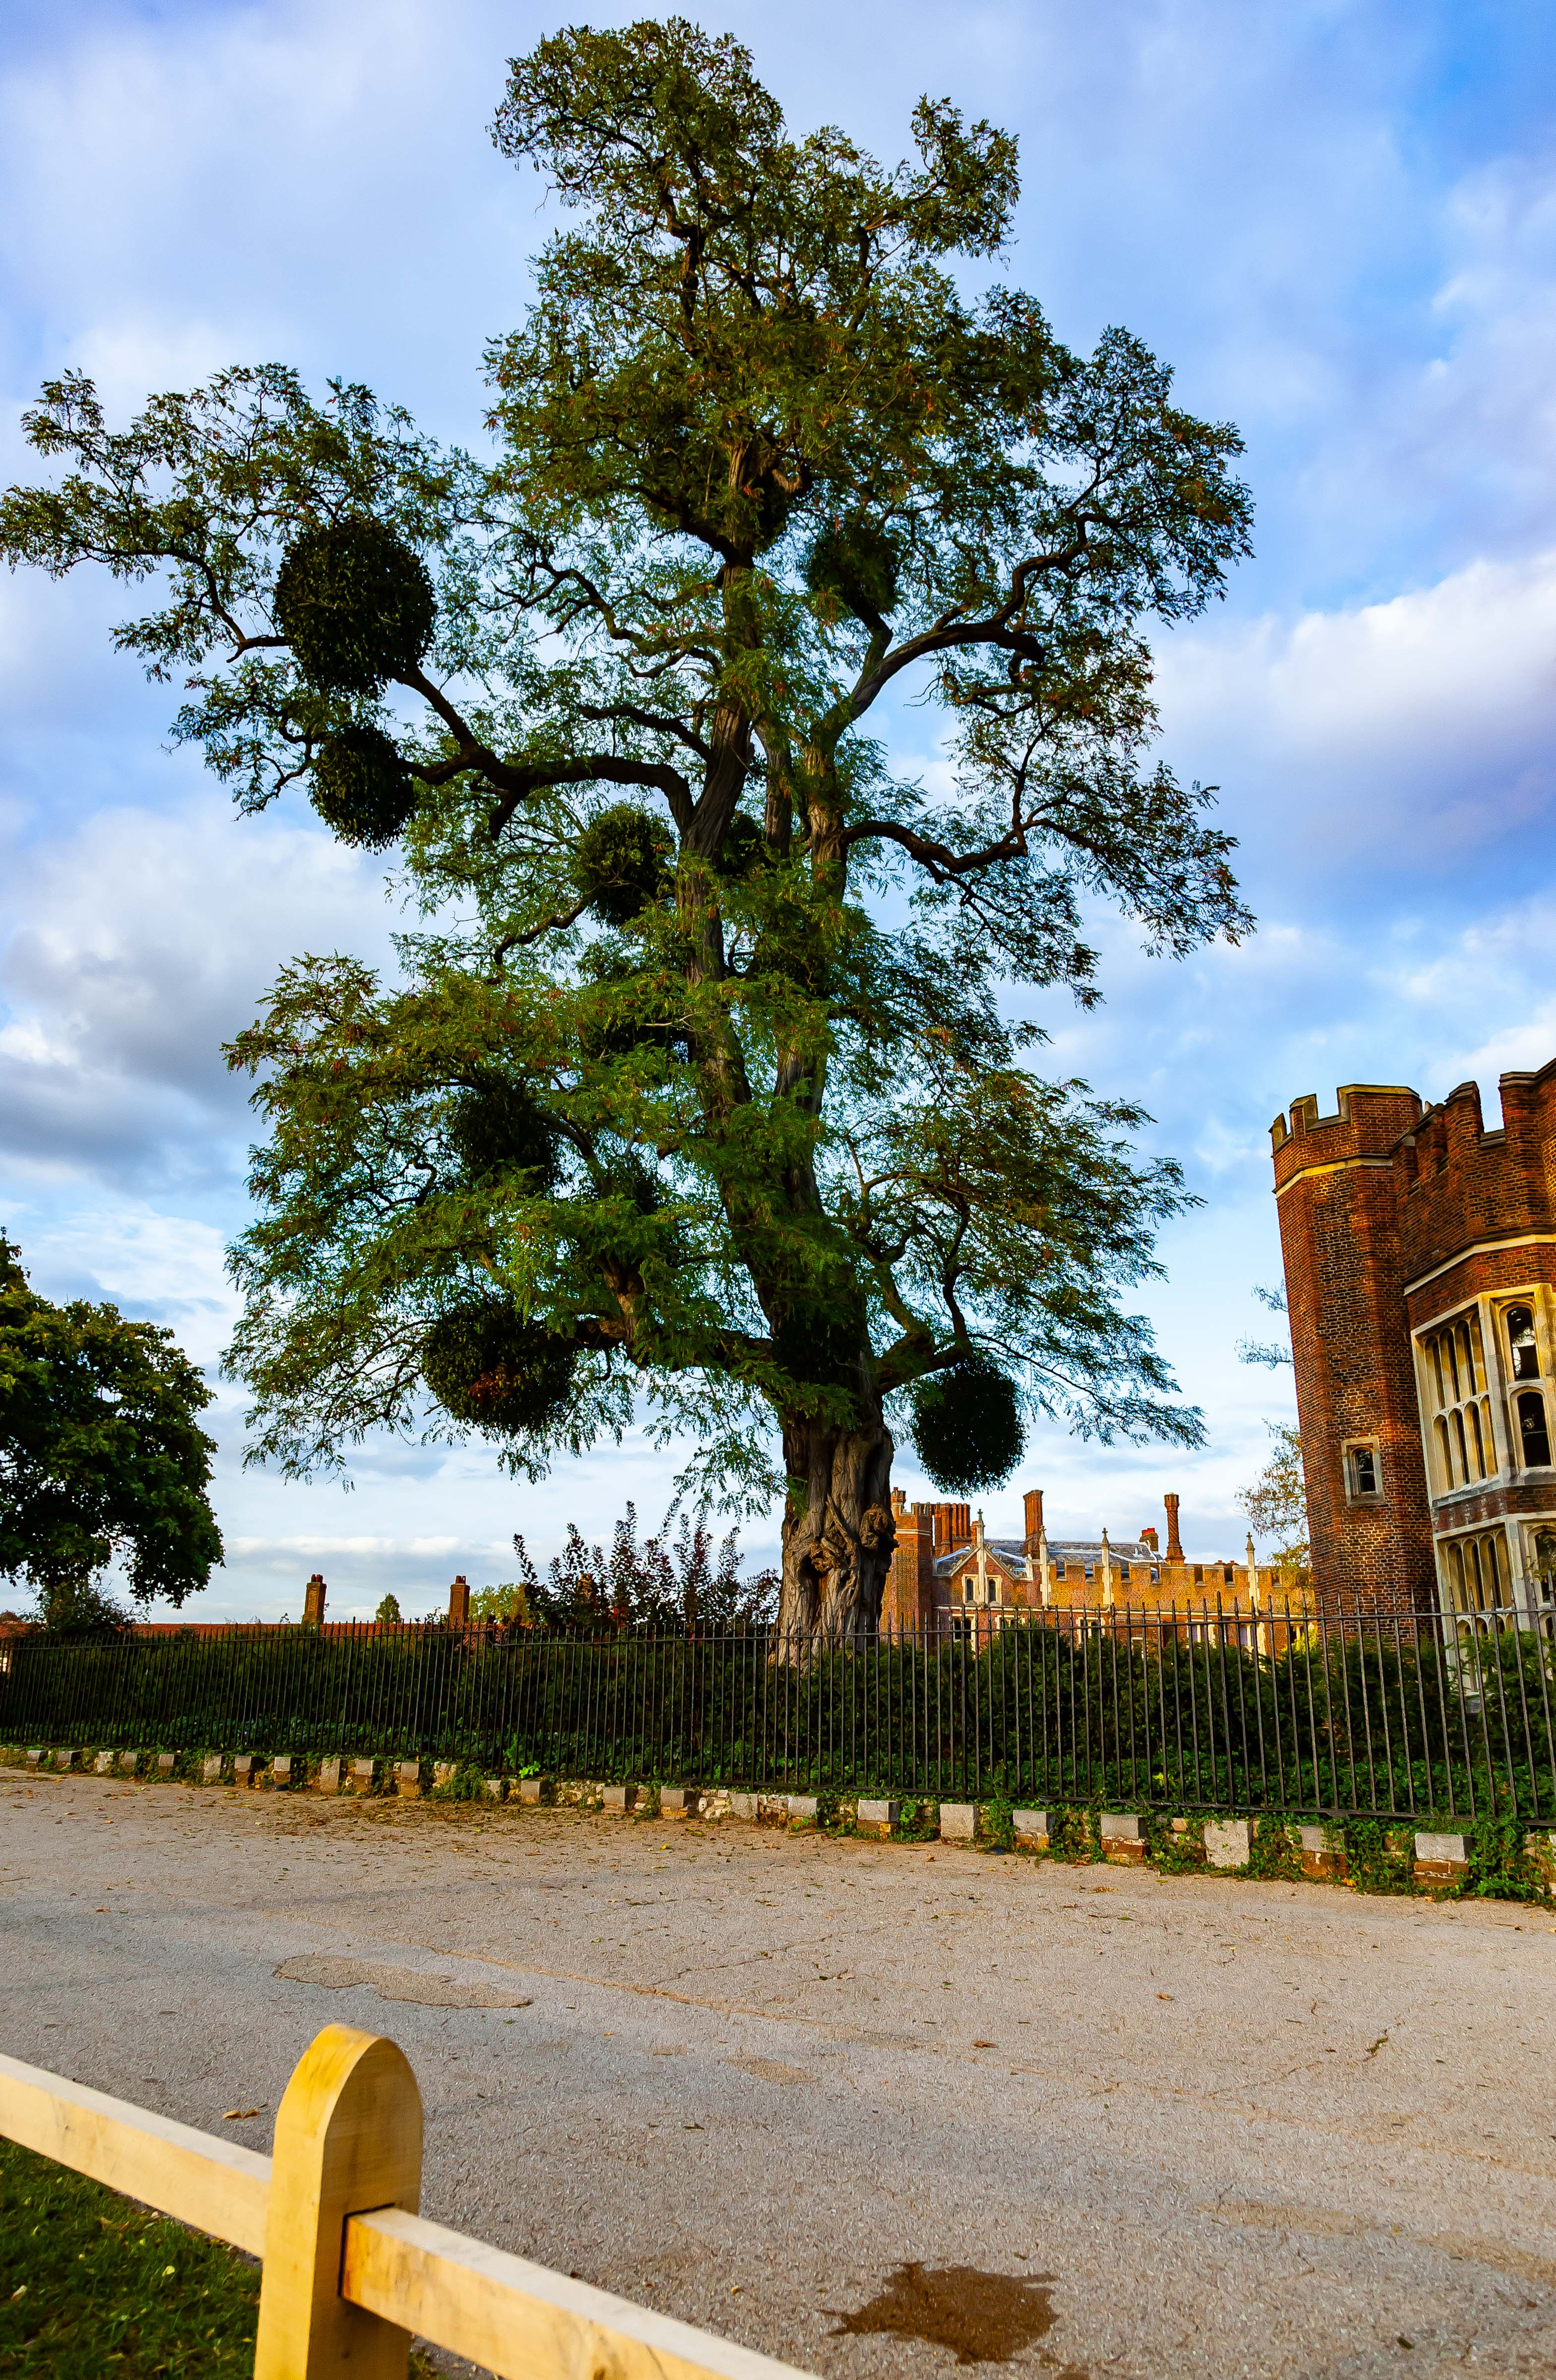 UK, Kingston upon Thames (London) Prov, Hampton Court Palace Tree, 2009, IMG 3798